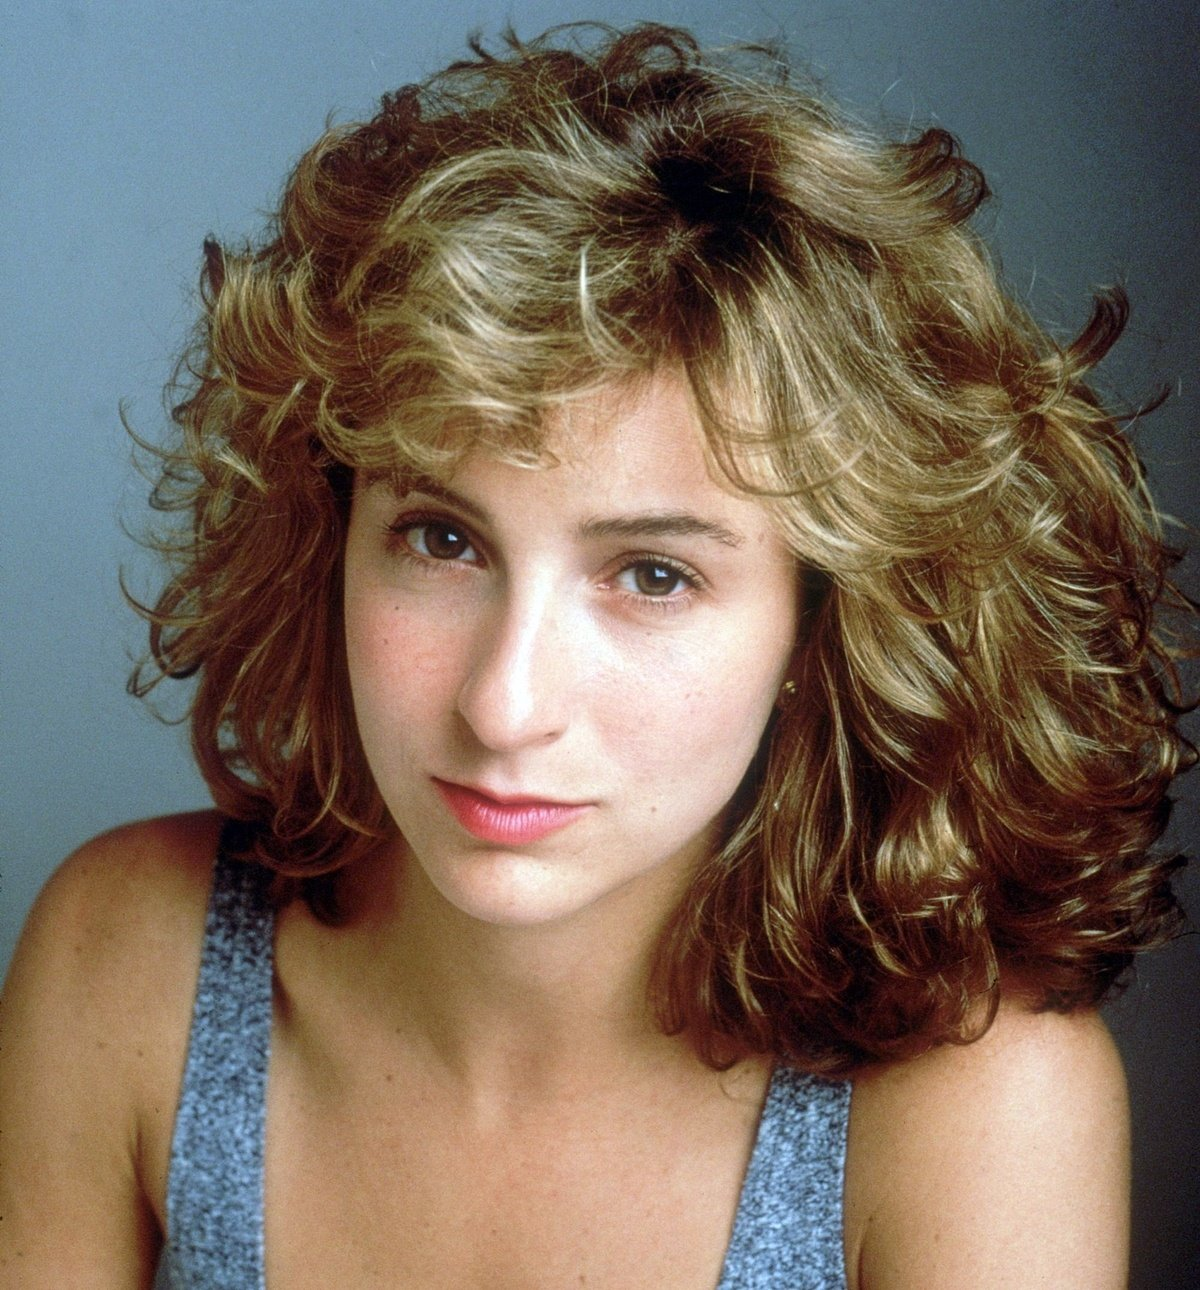 Jennifer Grey in the 1980s, complete with a perm